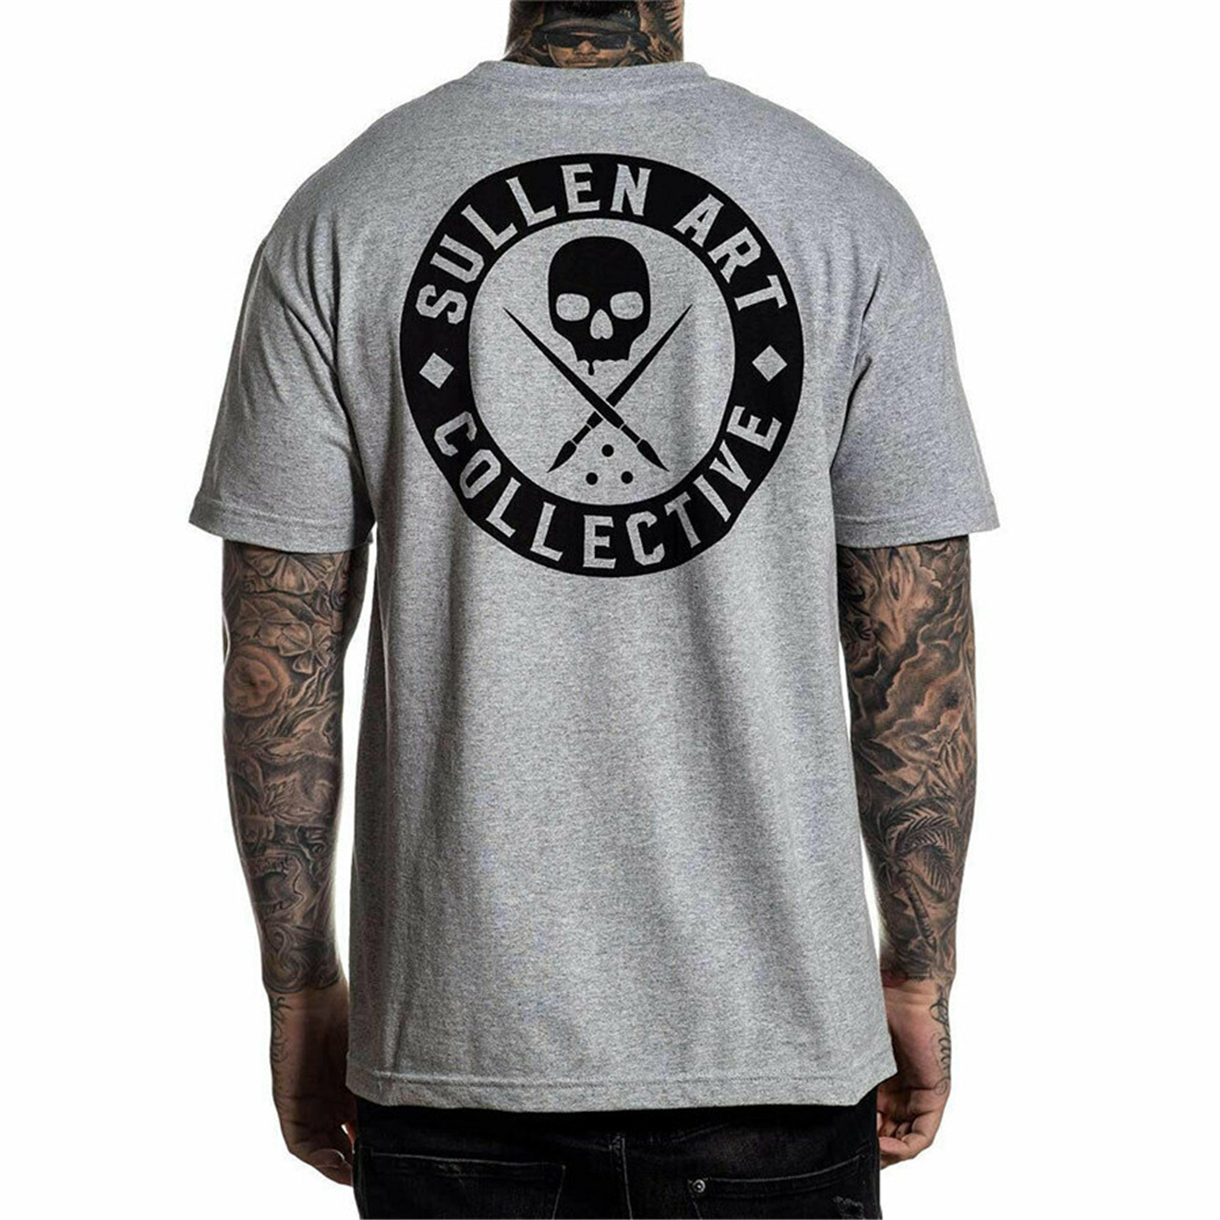 Sullen Men's Classic Short Sleeve T-Shirt Heather Gray Clothing Apparel S Tops Tee Shirt Latest new style(China)